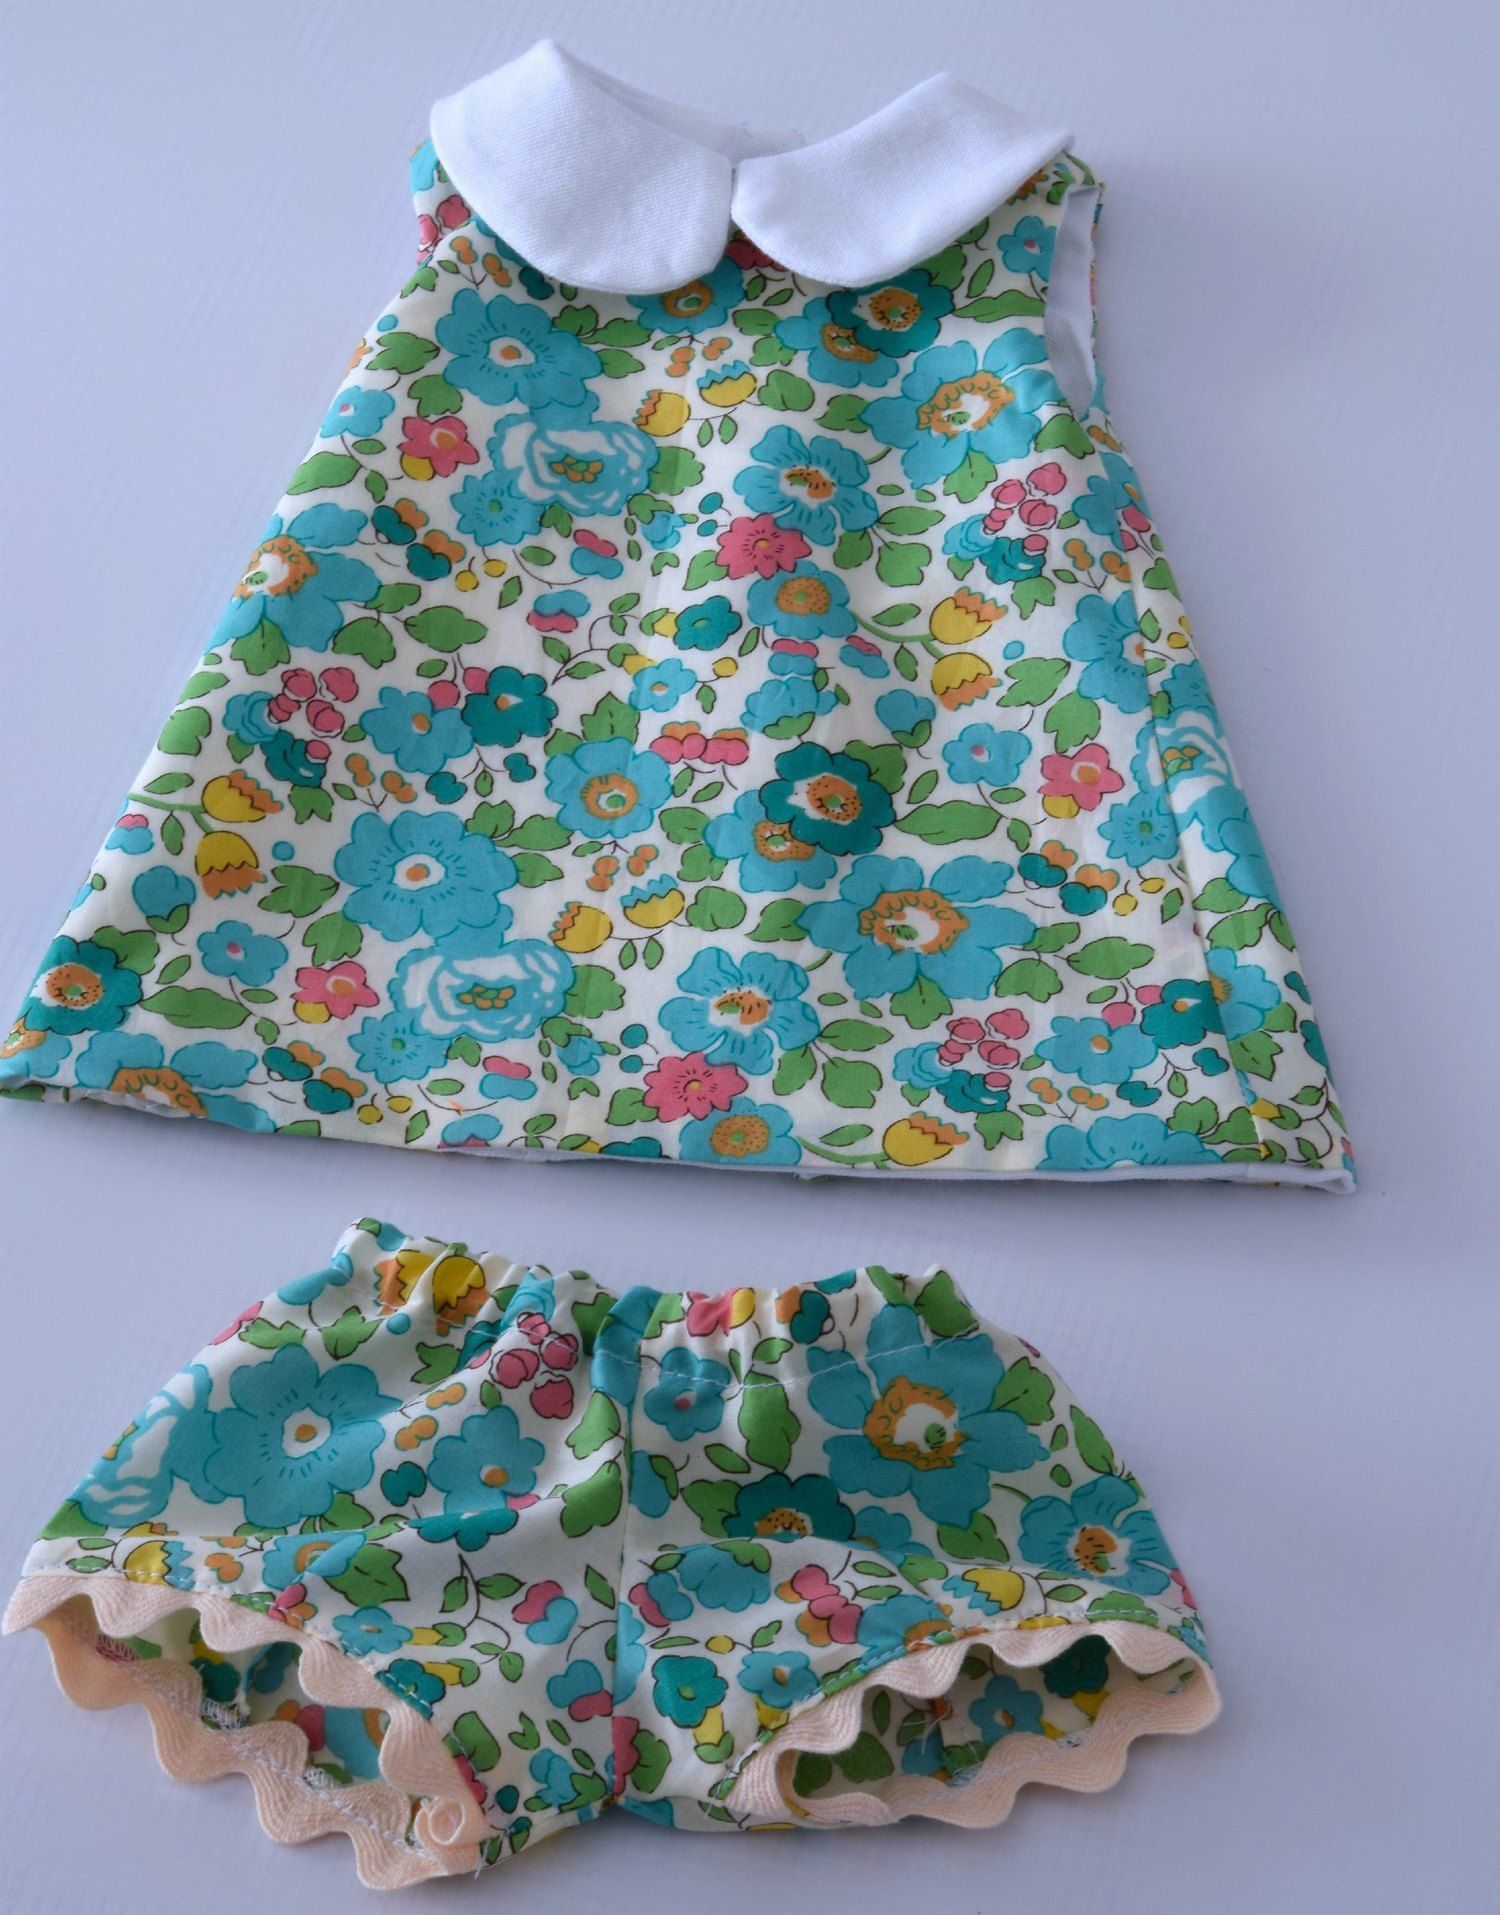 Handmade doll clothes. Some of the doll clothing I have made. #dollclothes